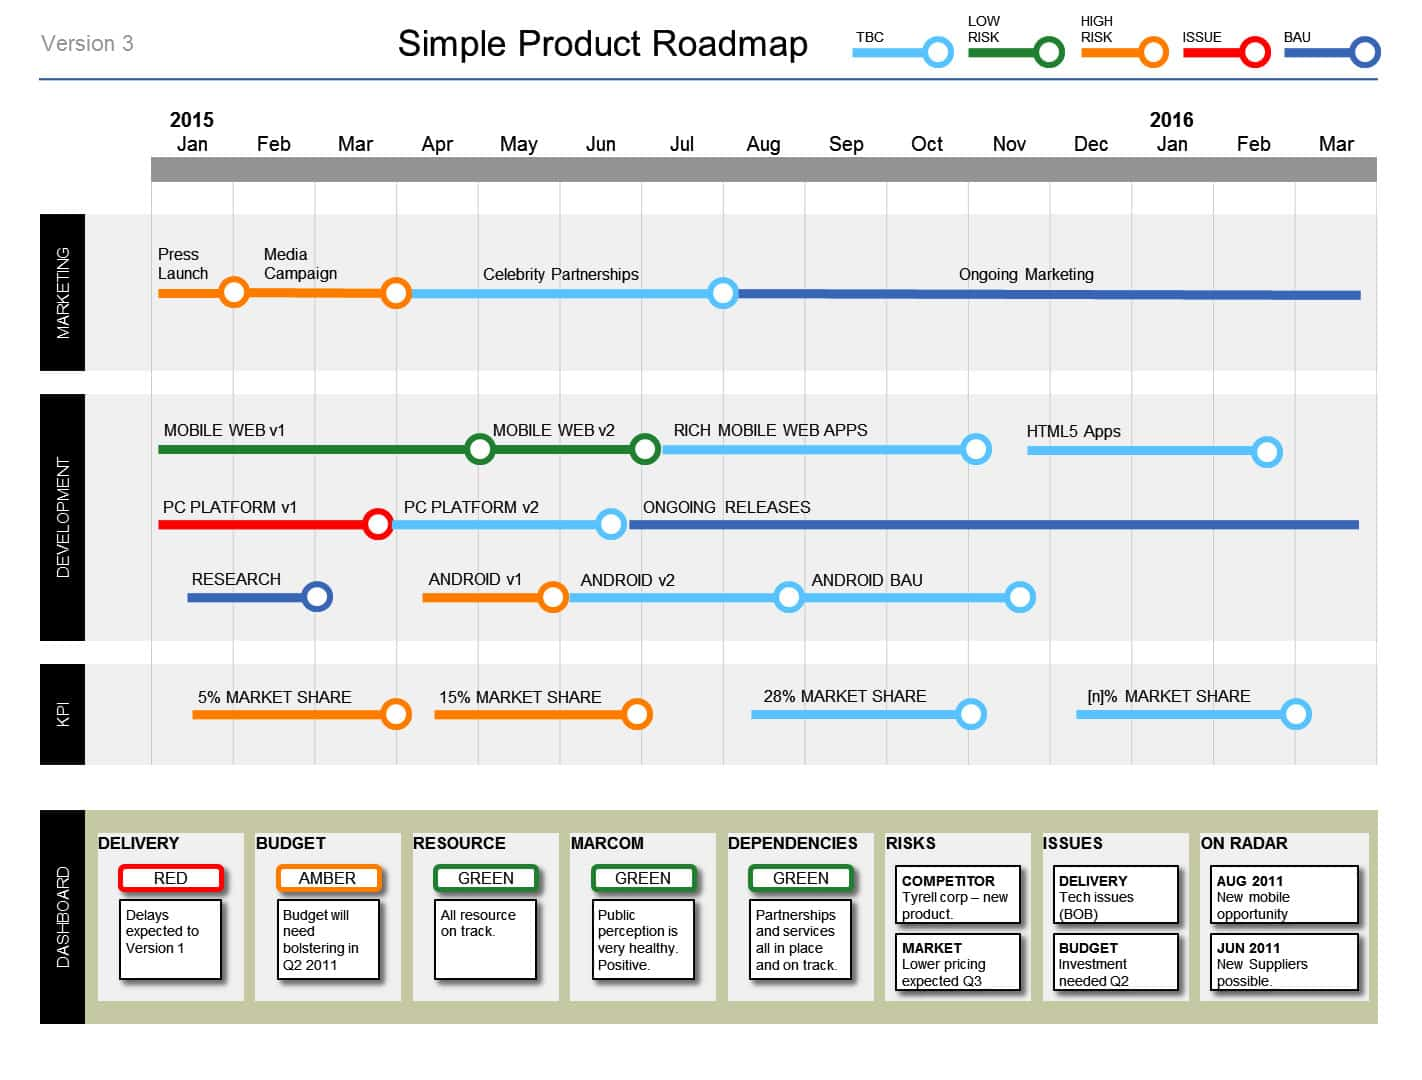 Simple Product Roadmap